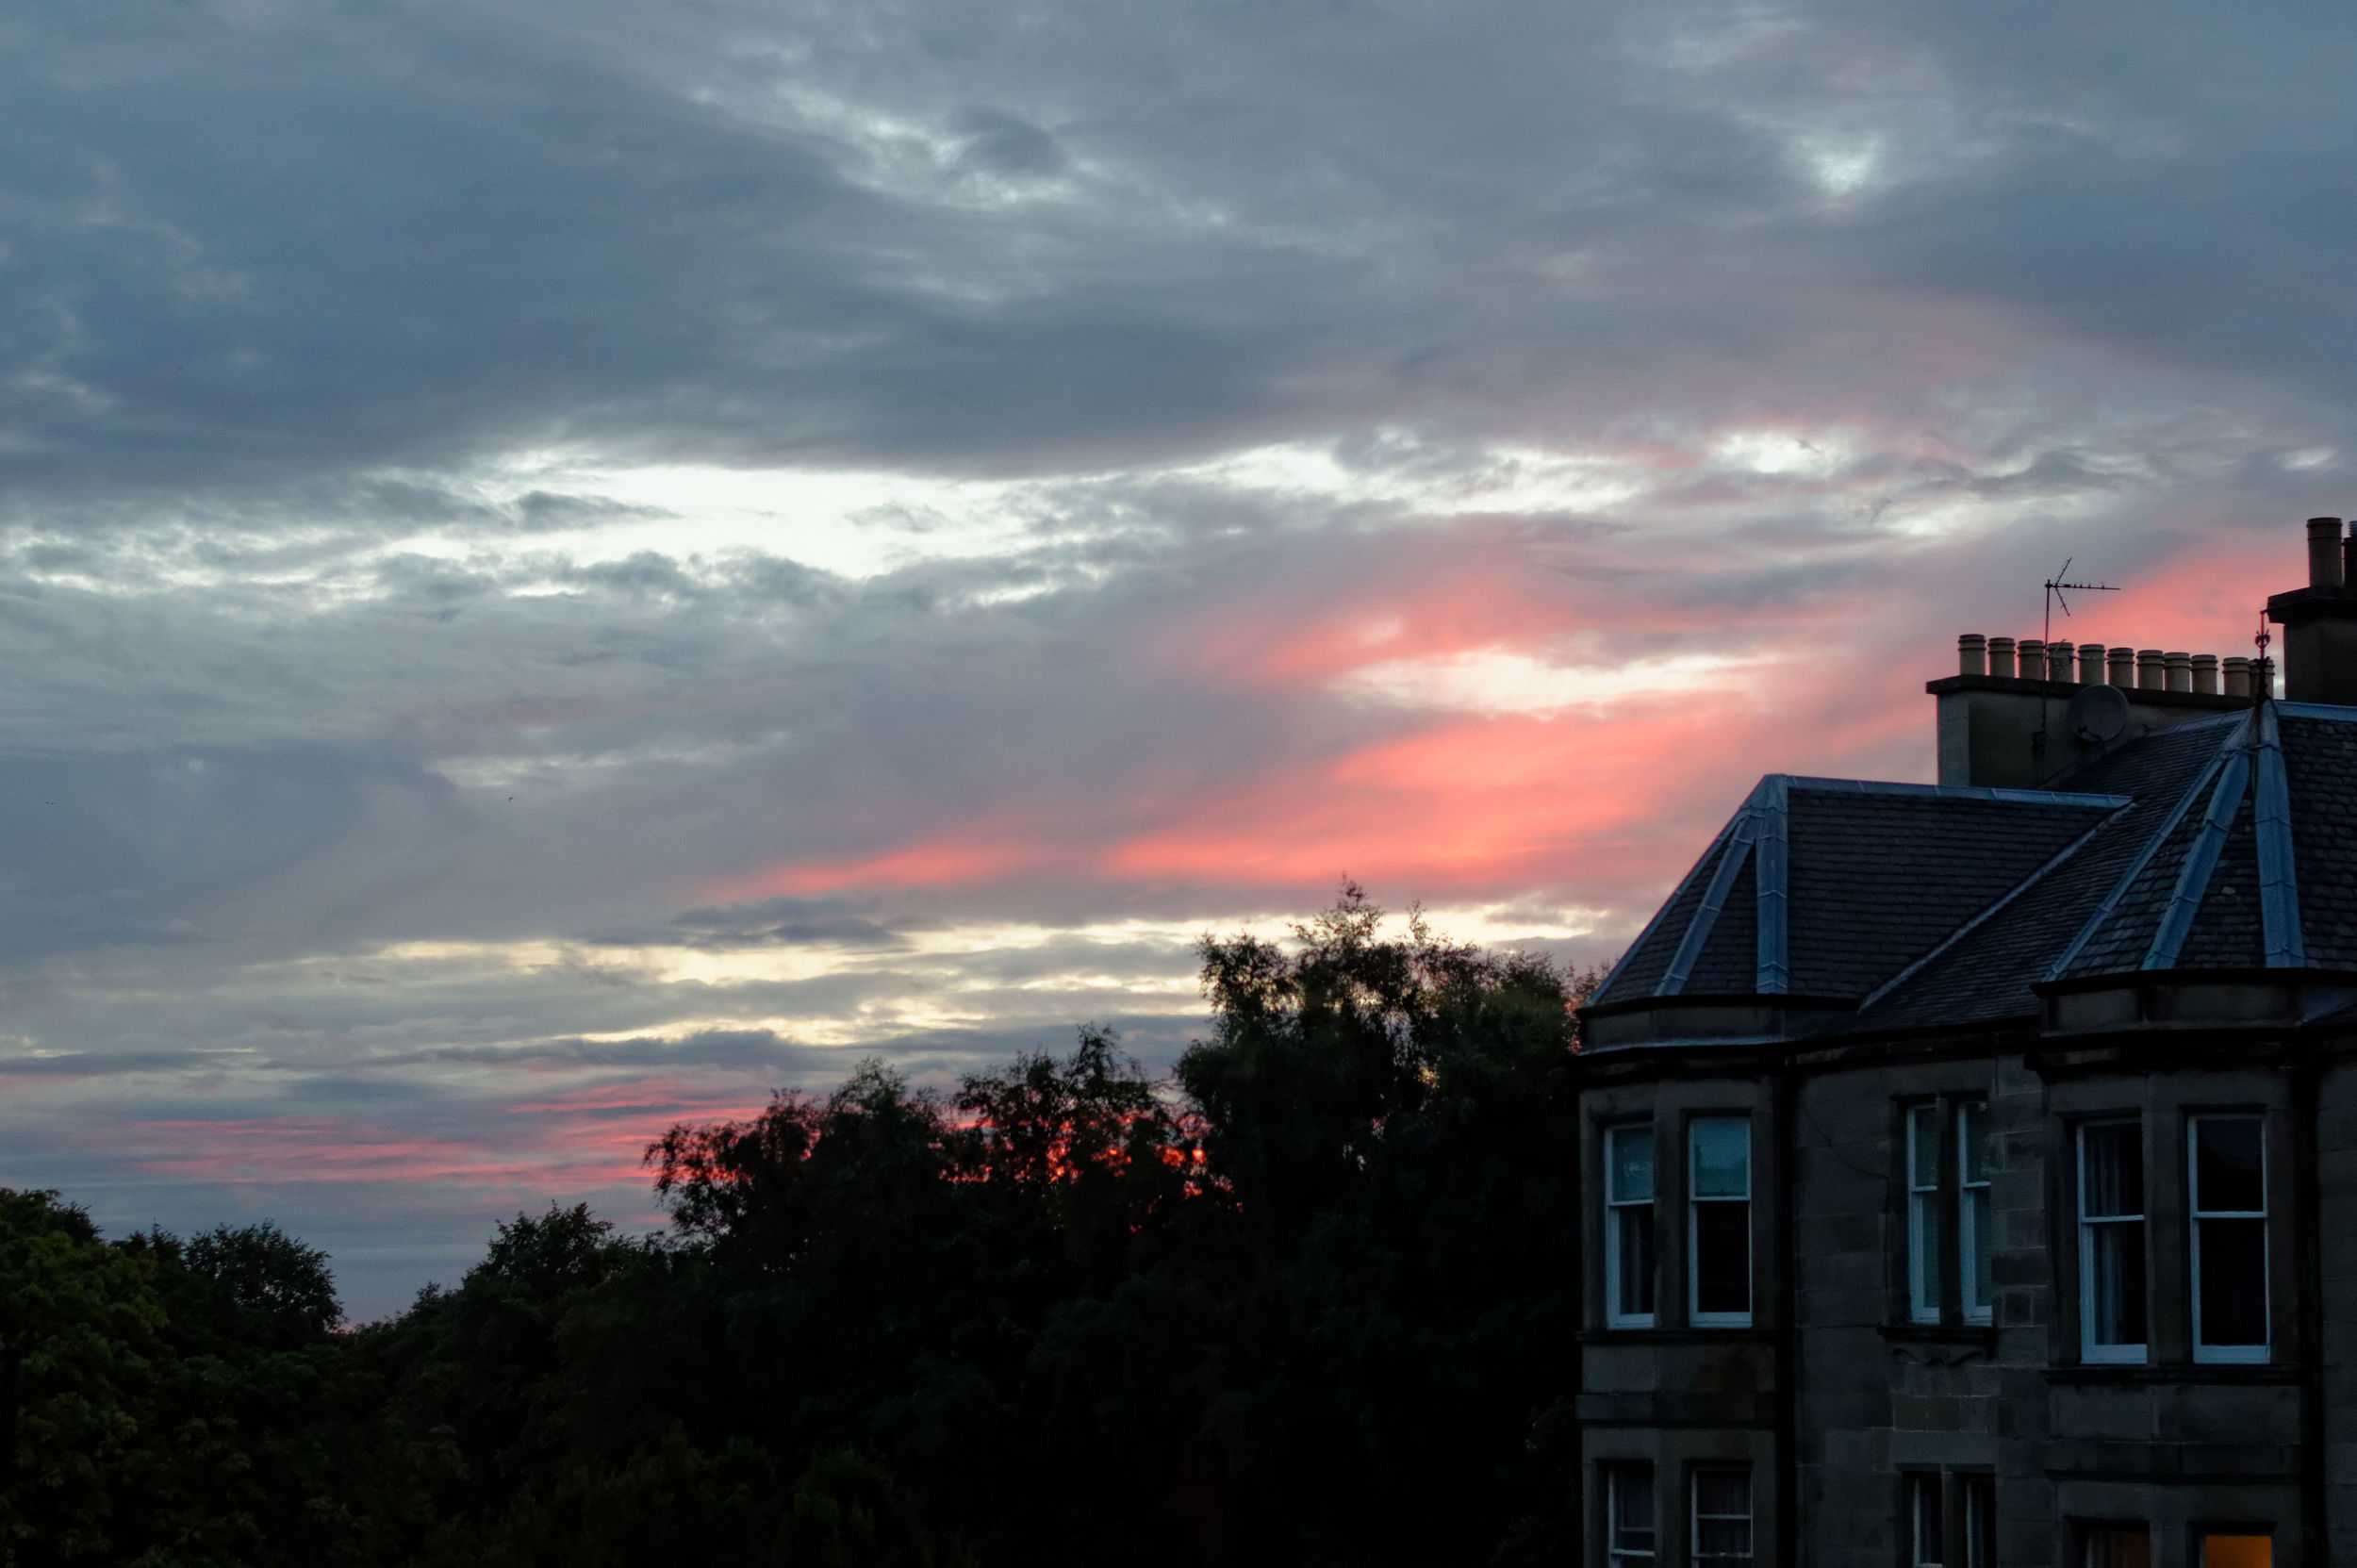 An August sunset viewed from our living room window. The buildings are of a similar style to ours.